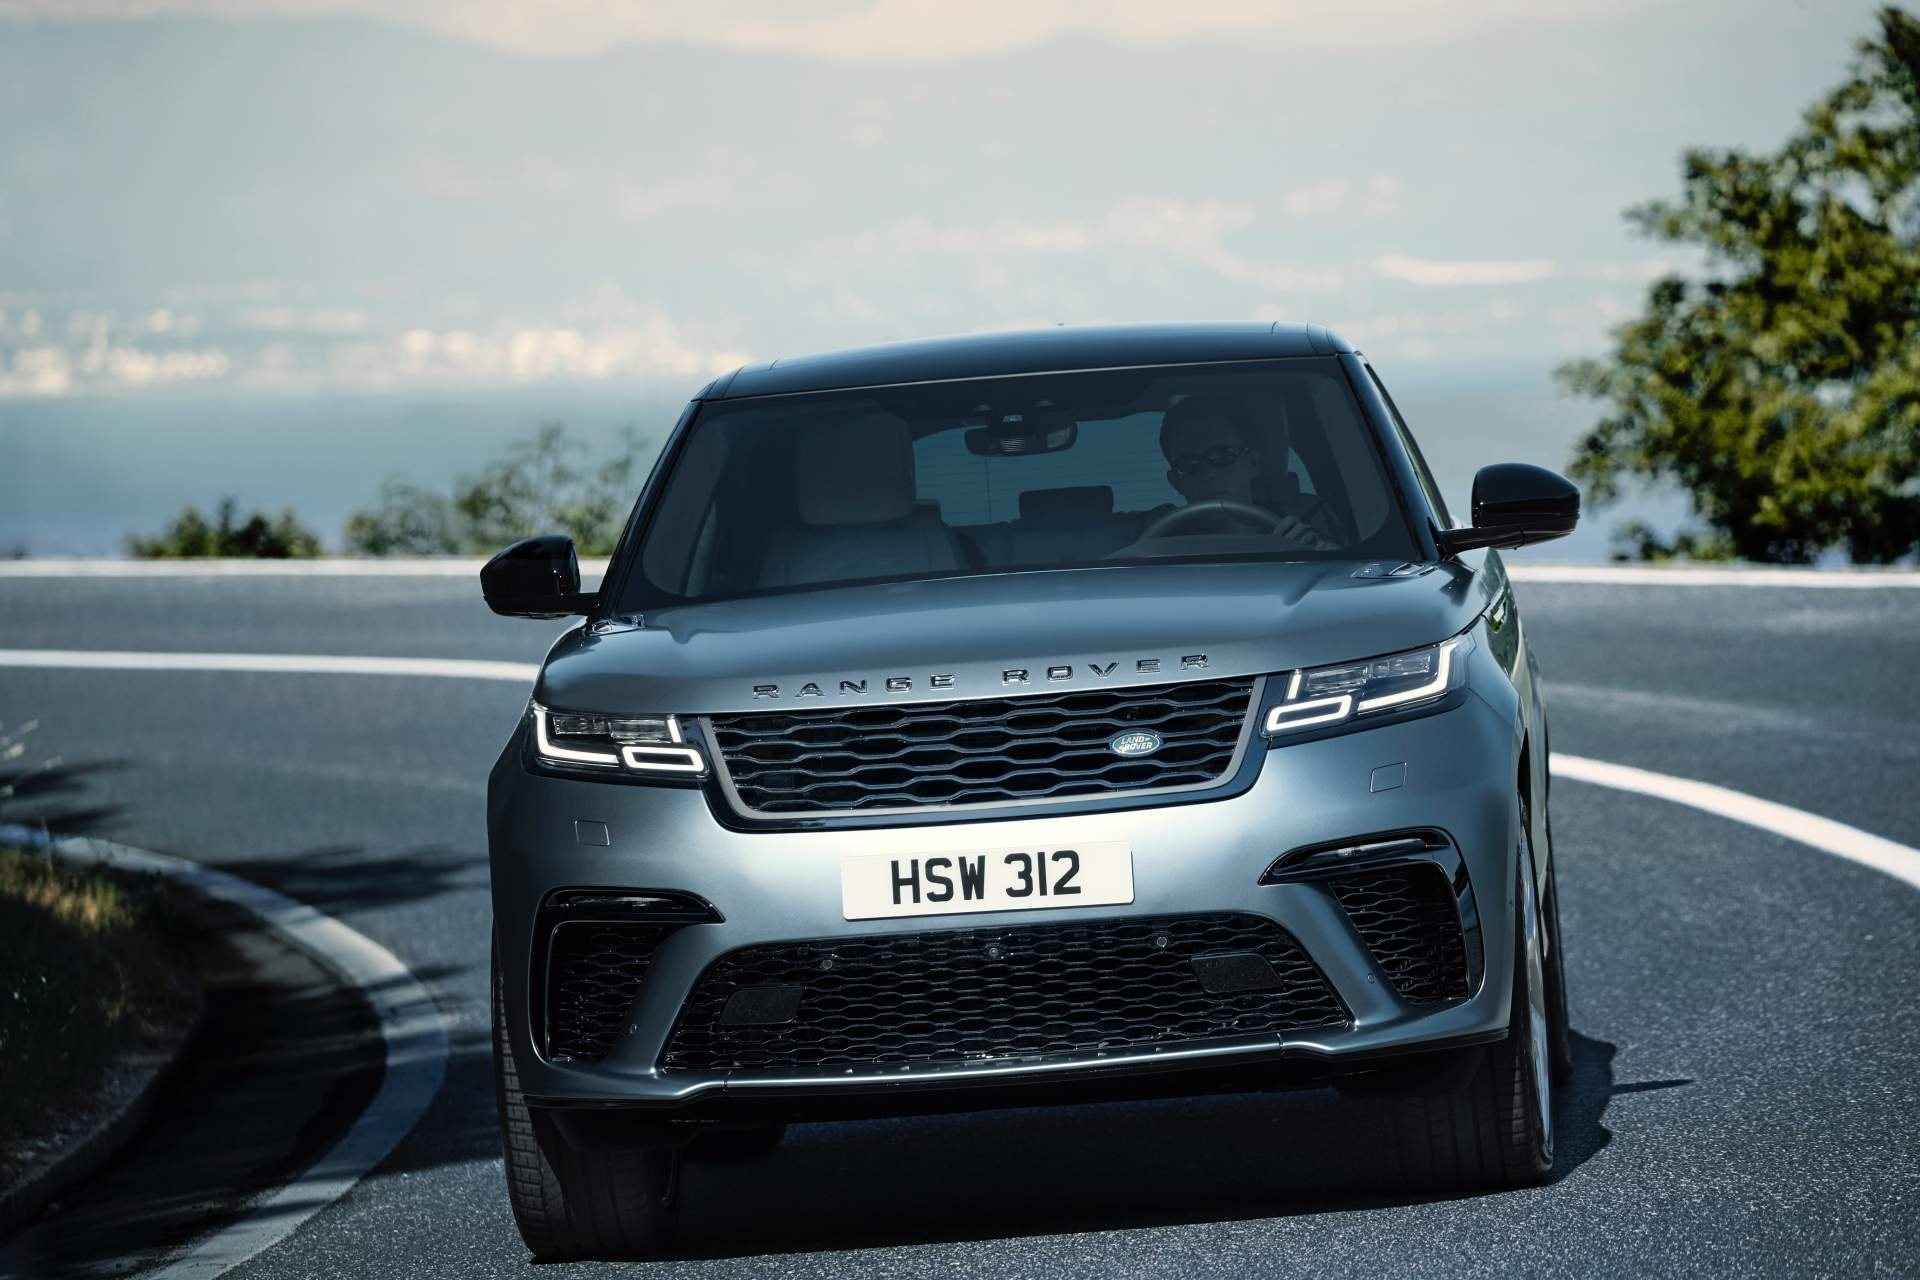 2019 Range Rover Velar SVAutobiography Dynamic Edition Front Wallpapers (4)